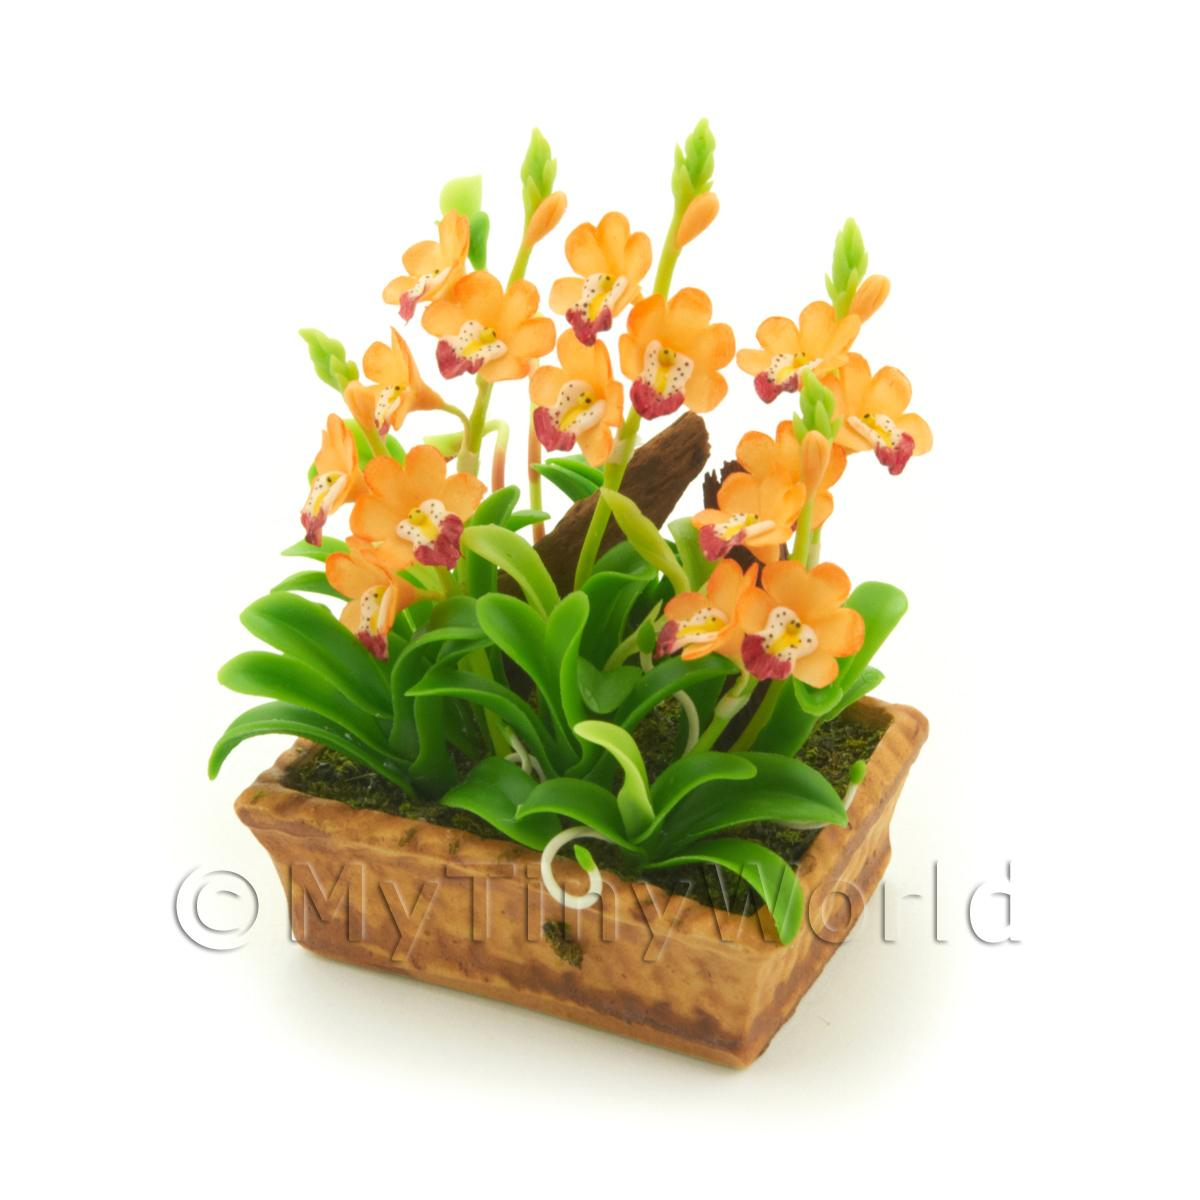 Dolls House Miniature Peach / Yellow Cattleya Orchid Display